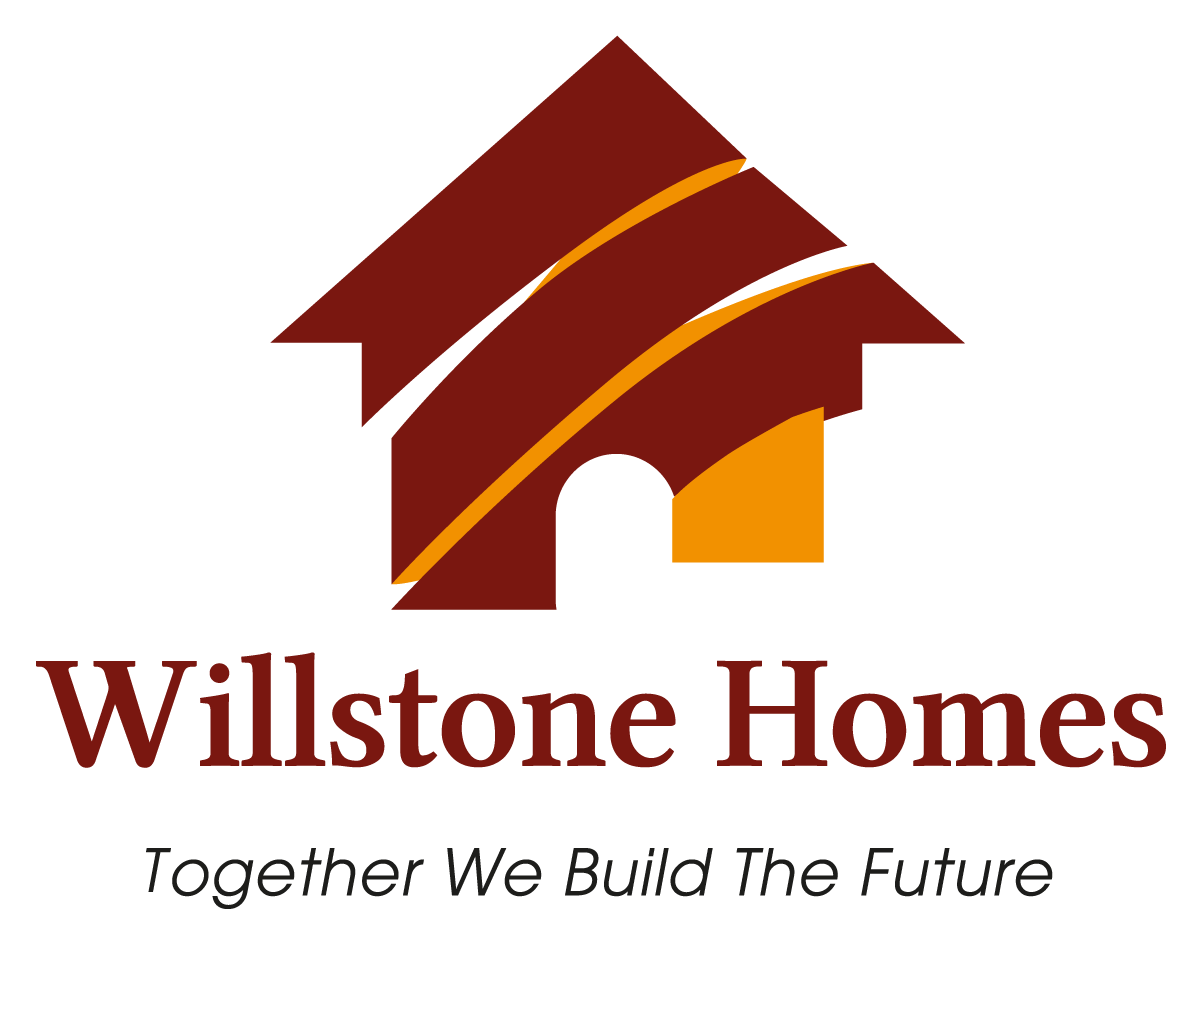 Willstone Homes-Together We build the future